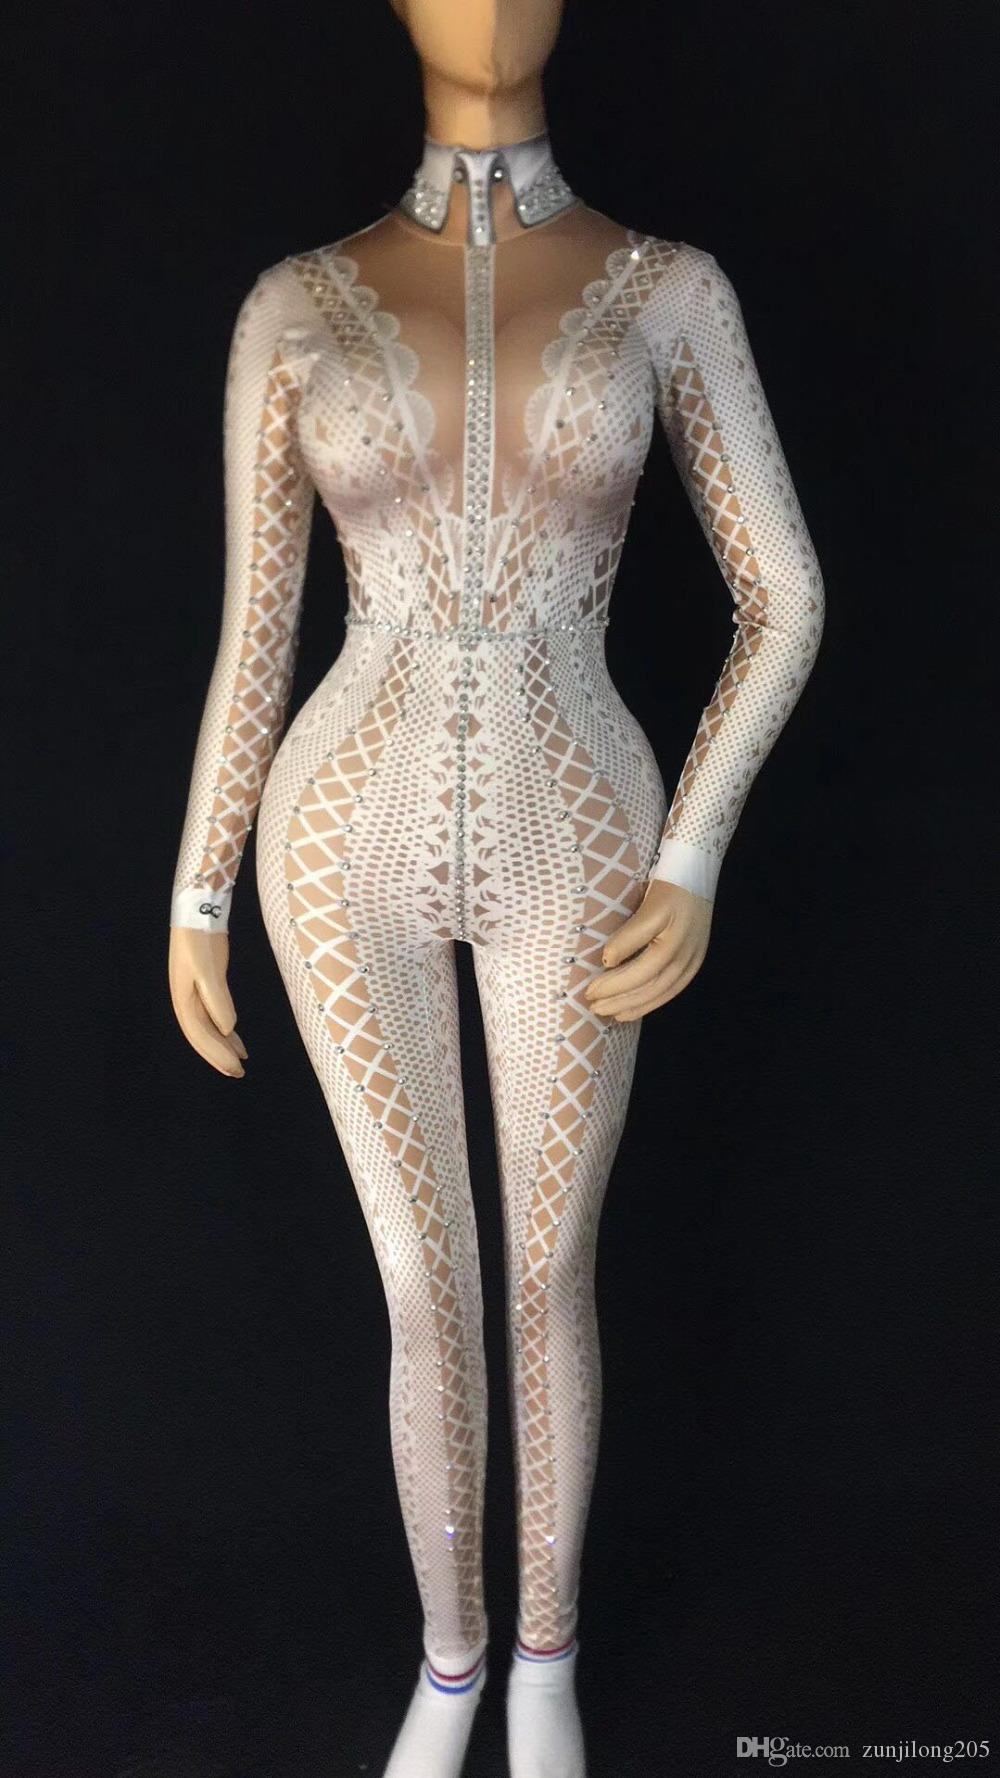 2019 Spandex Printed Stretch Jumpsuit Rhinestones One Piece Bodysuit Costume  Stage Outfit Singer Dancer Performance Rompers From Zunjilong205 4e7ac025a450